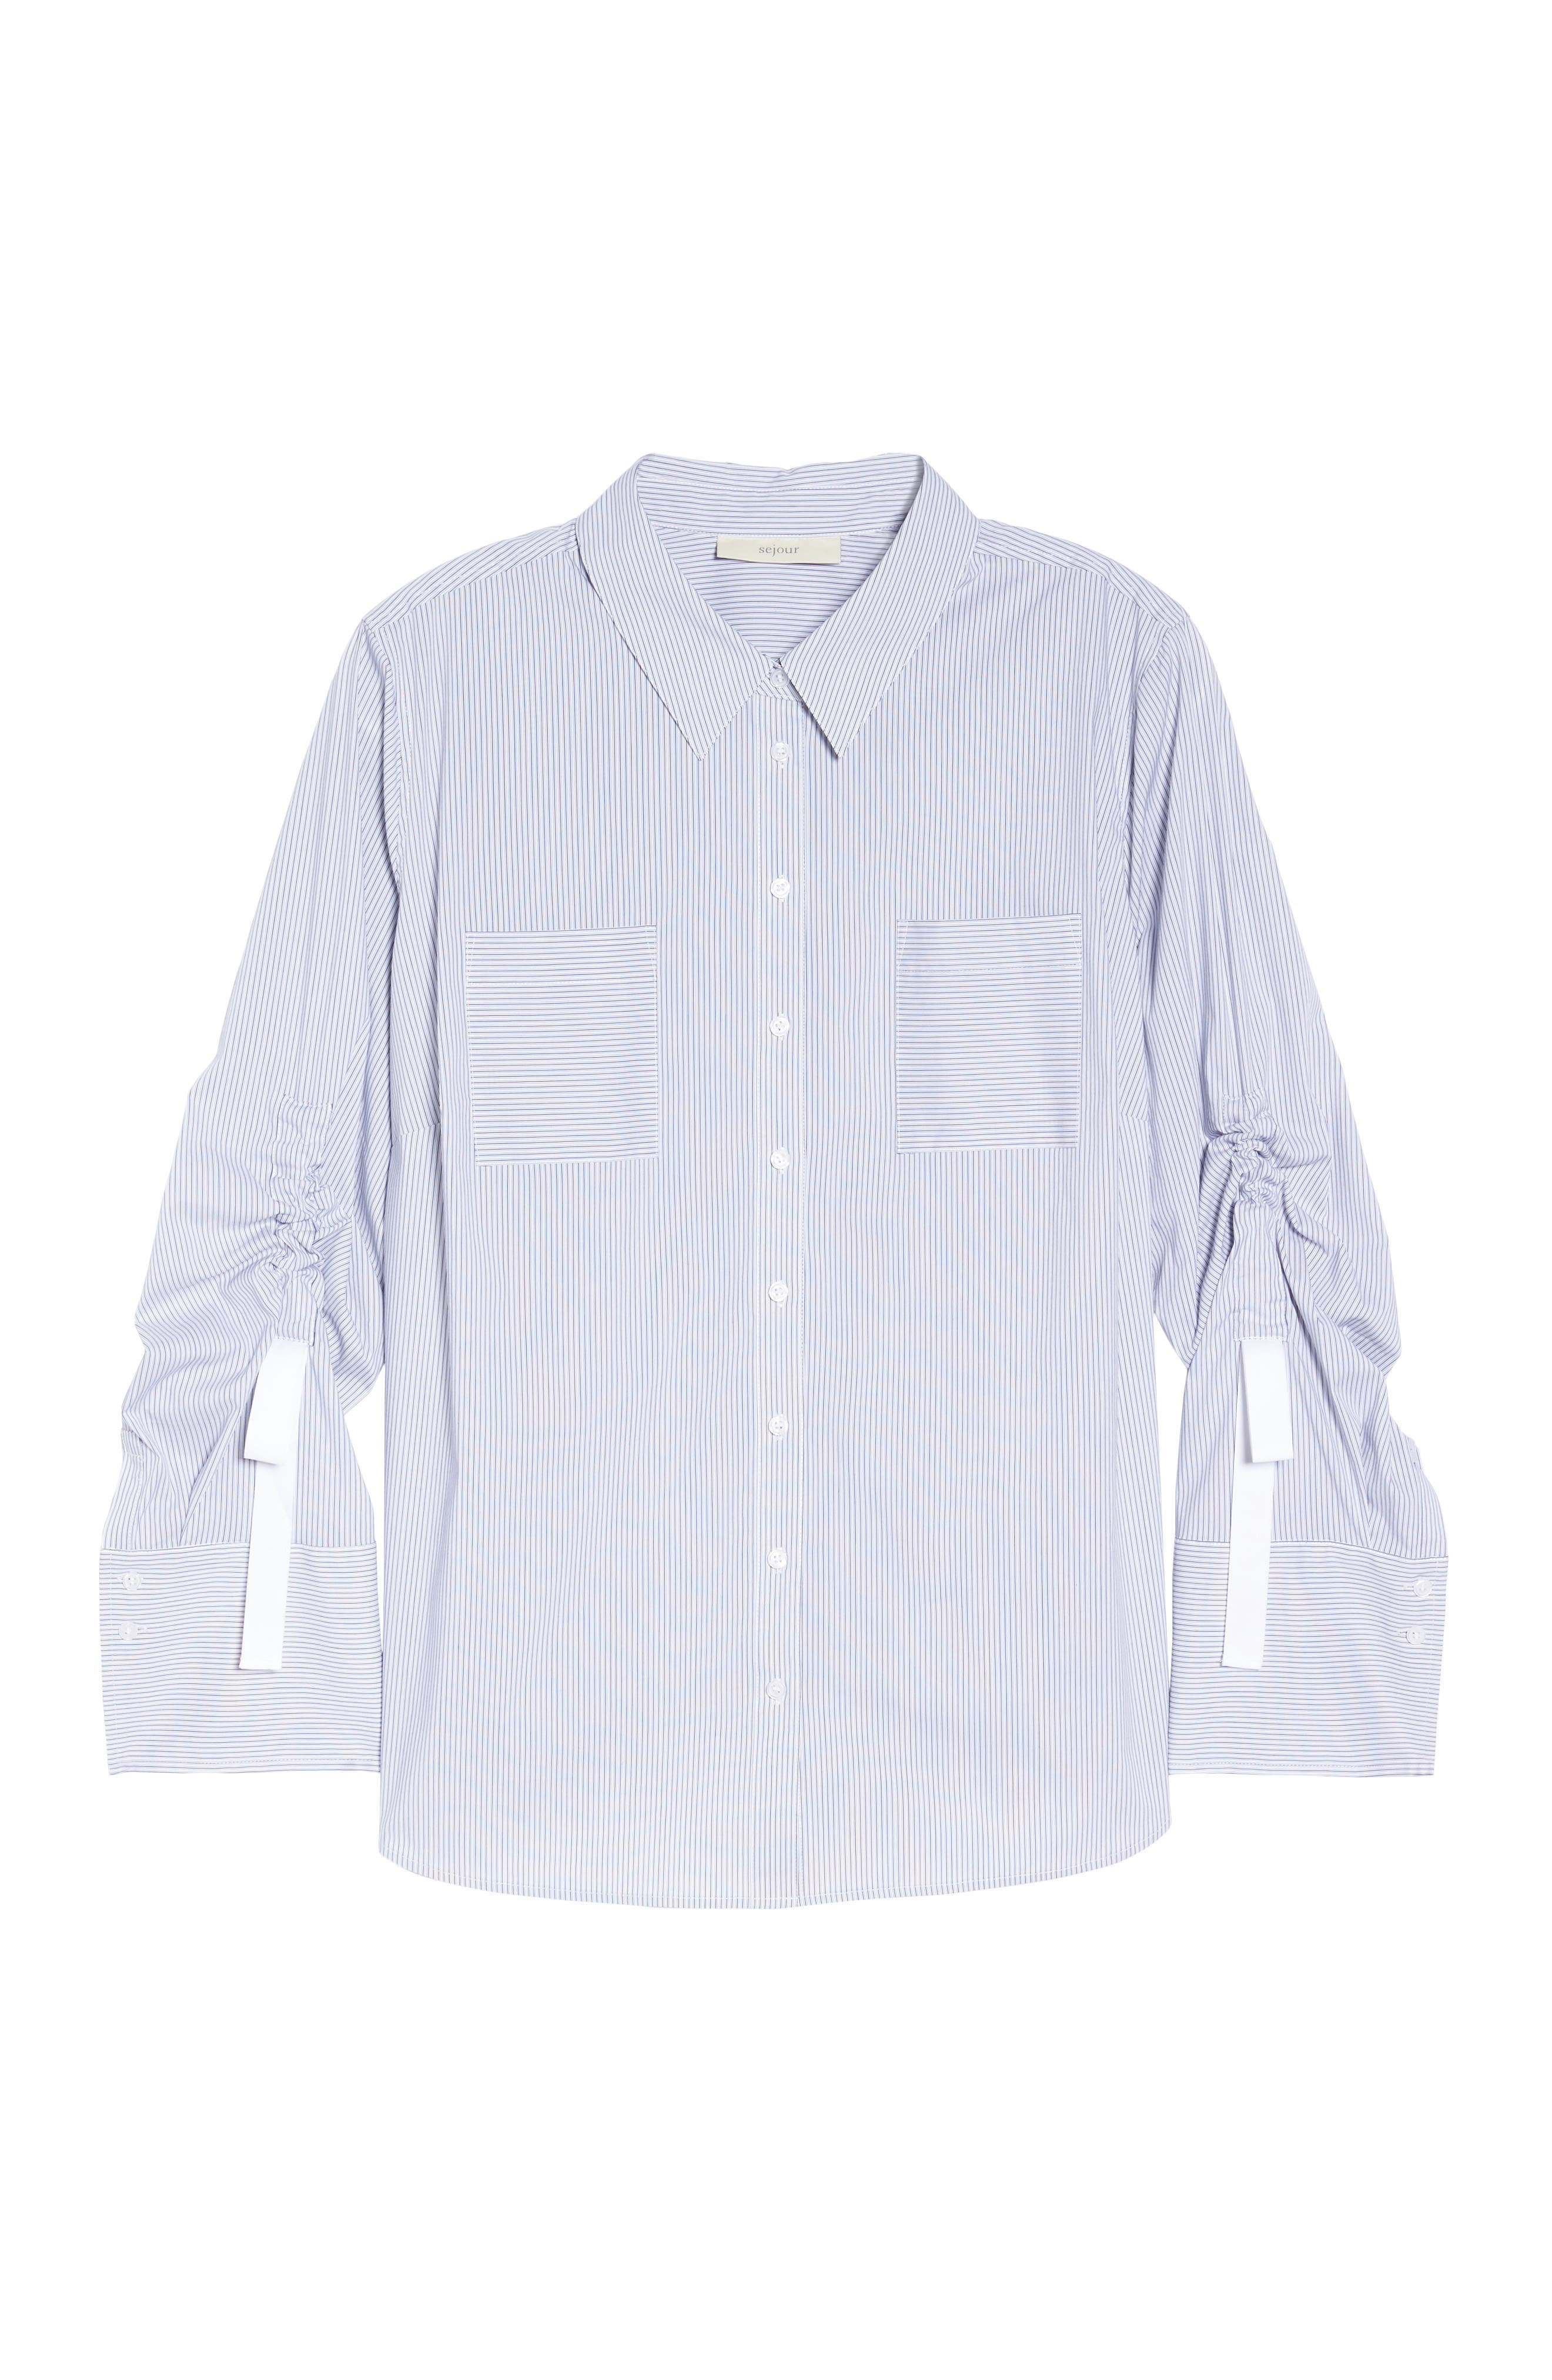 Gathered Sleeve Button Front Shirt,                             Alternate thumbnail 7, color,                             Blue/ White Stripe